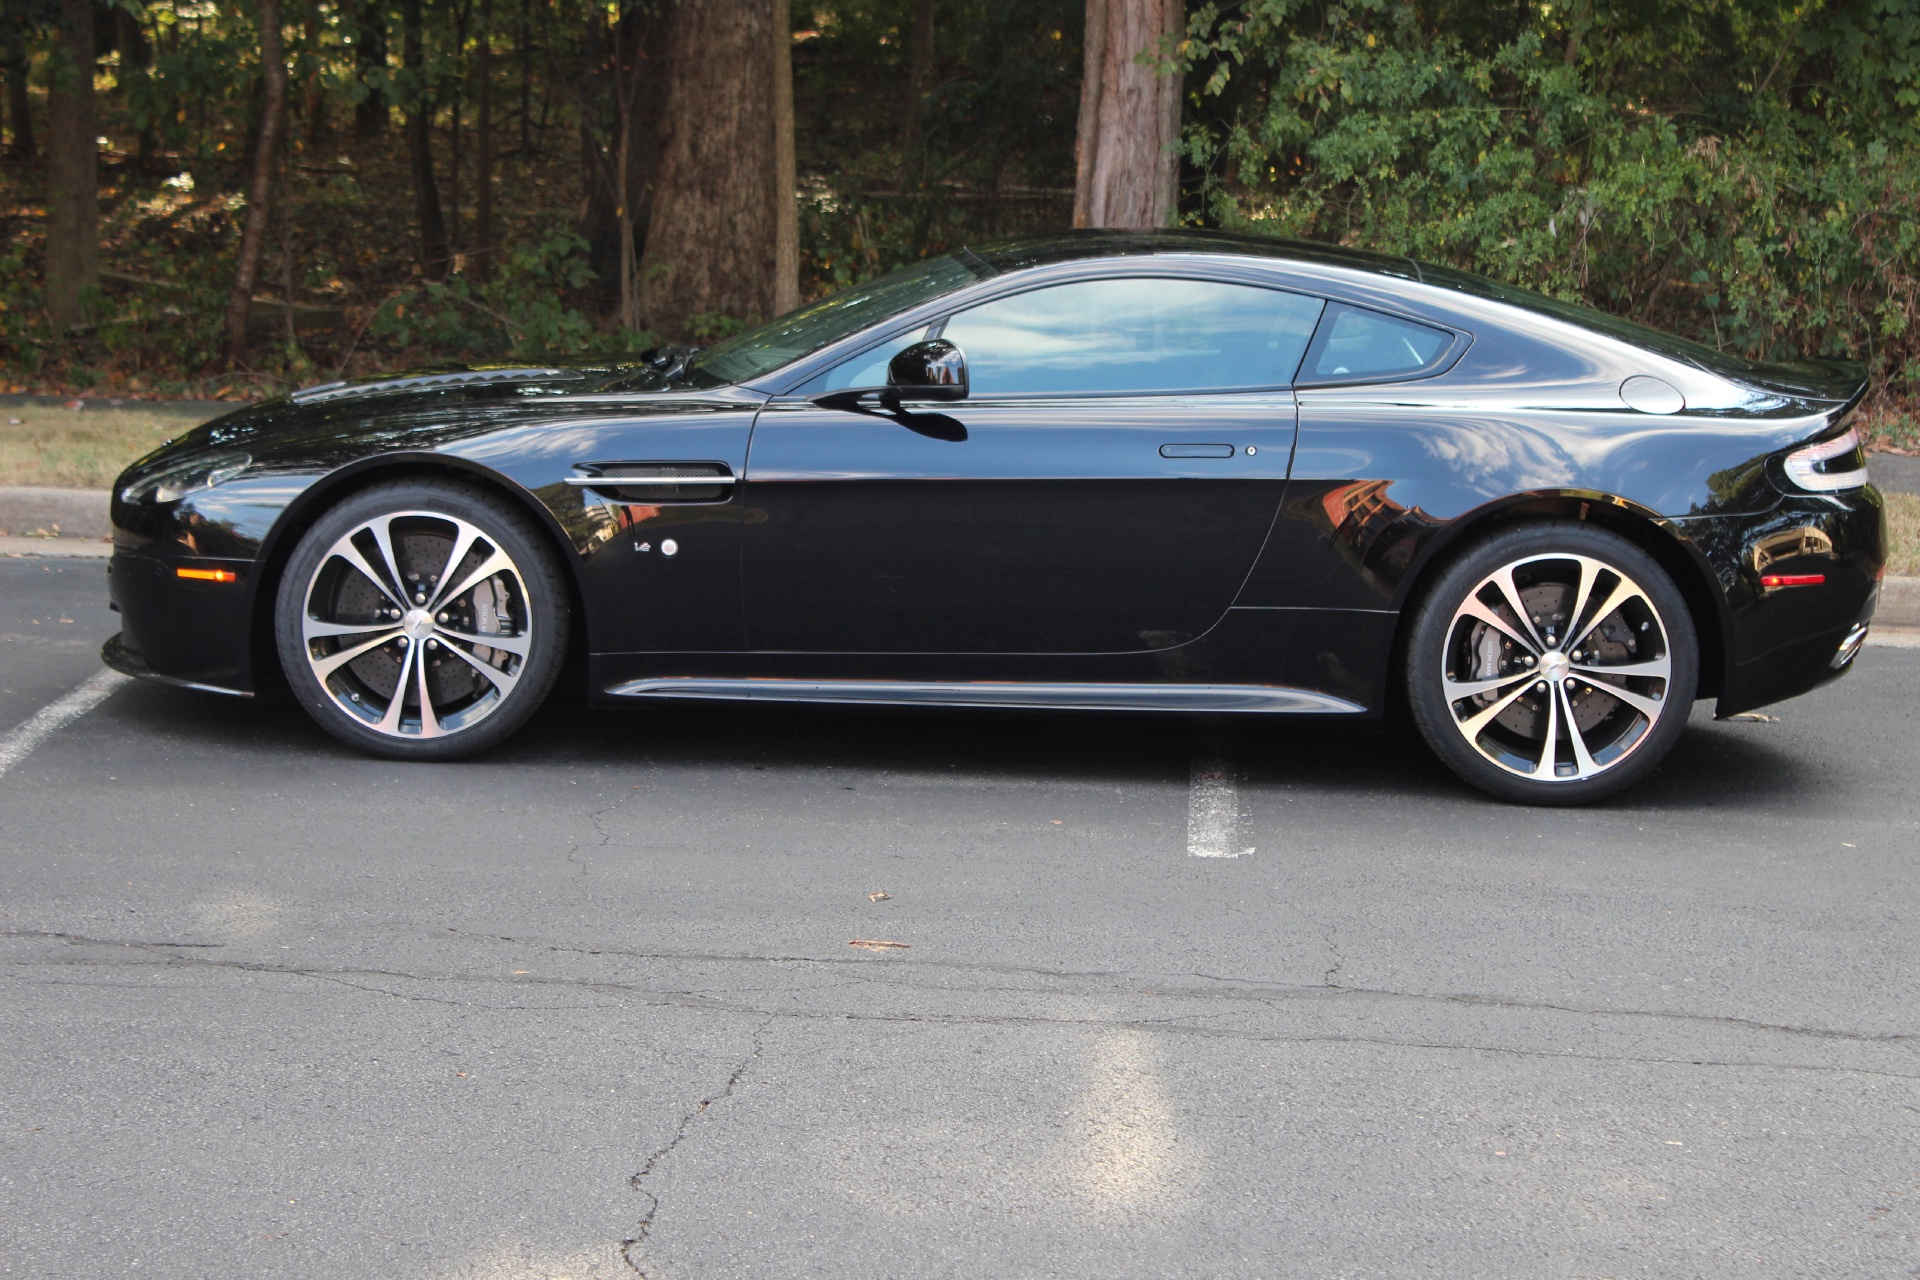 2015 aston martin v12 vantage v12 stock 5s01910 for sale near vienna va va aston martin. Black Bedroom Furniture Sets. Home Design Ideas